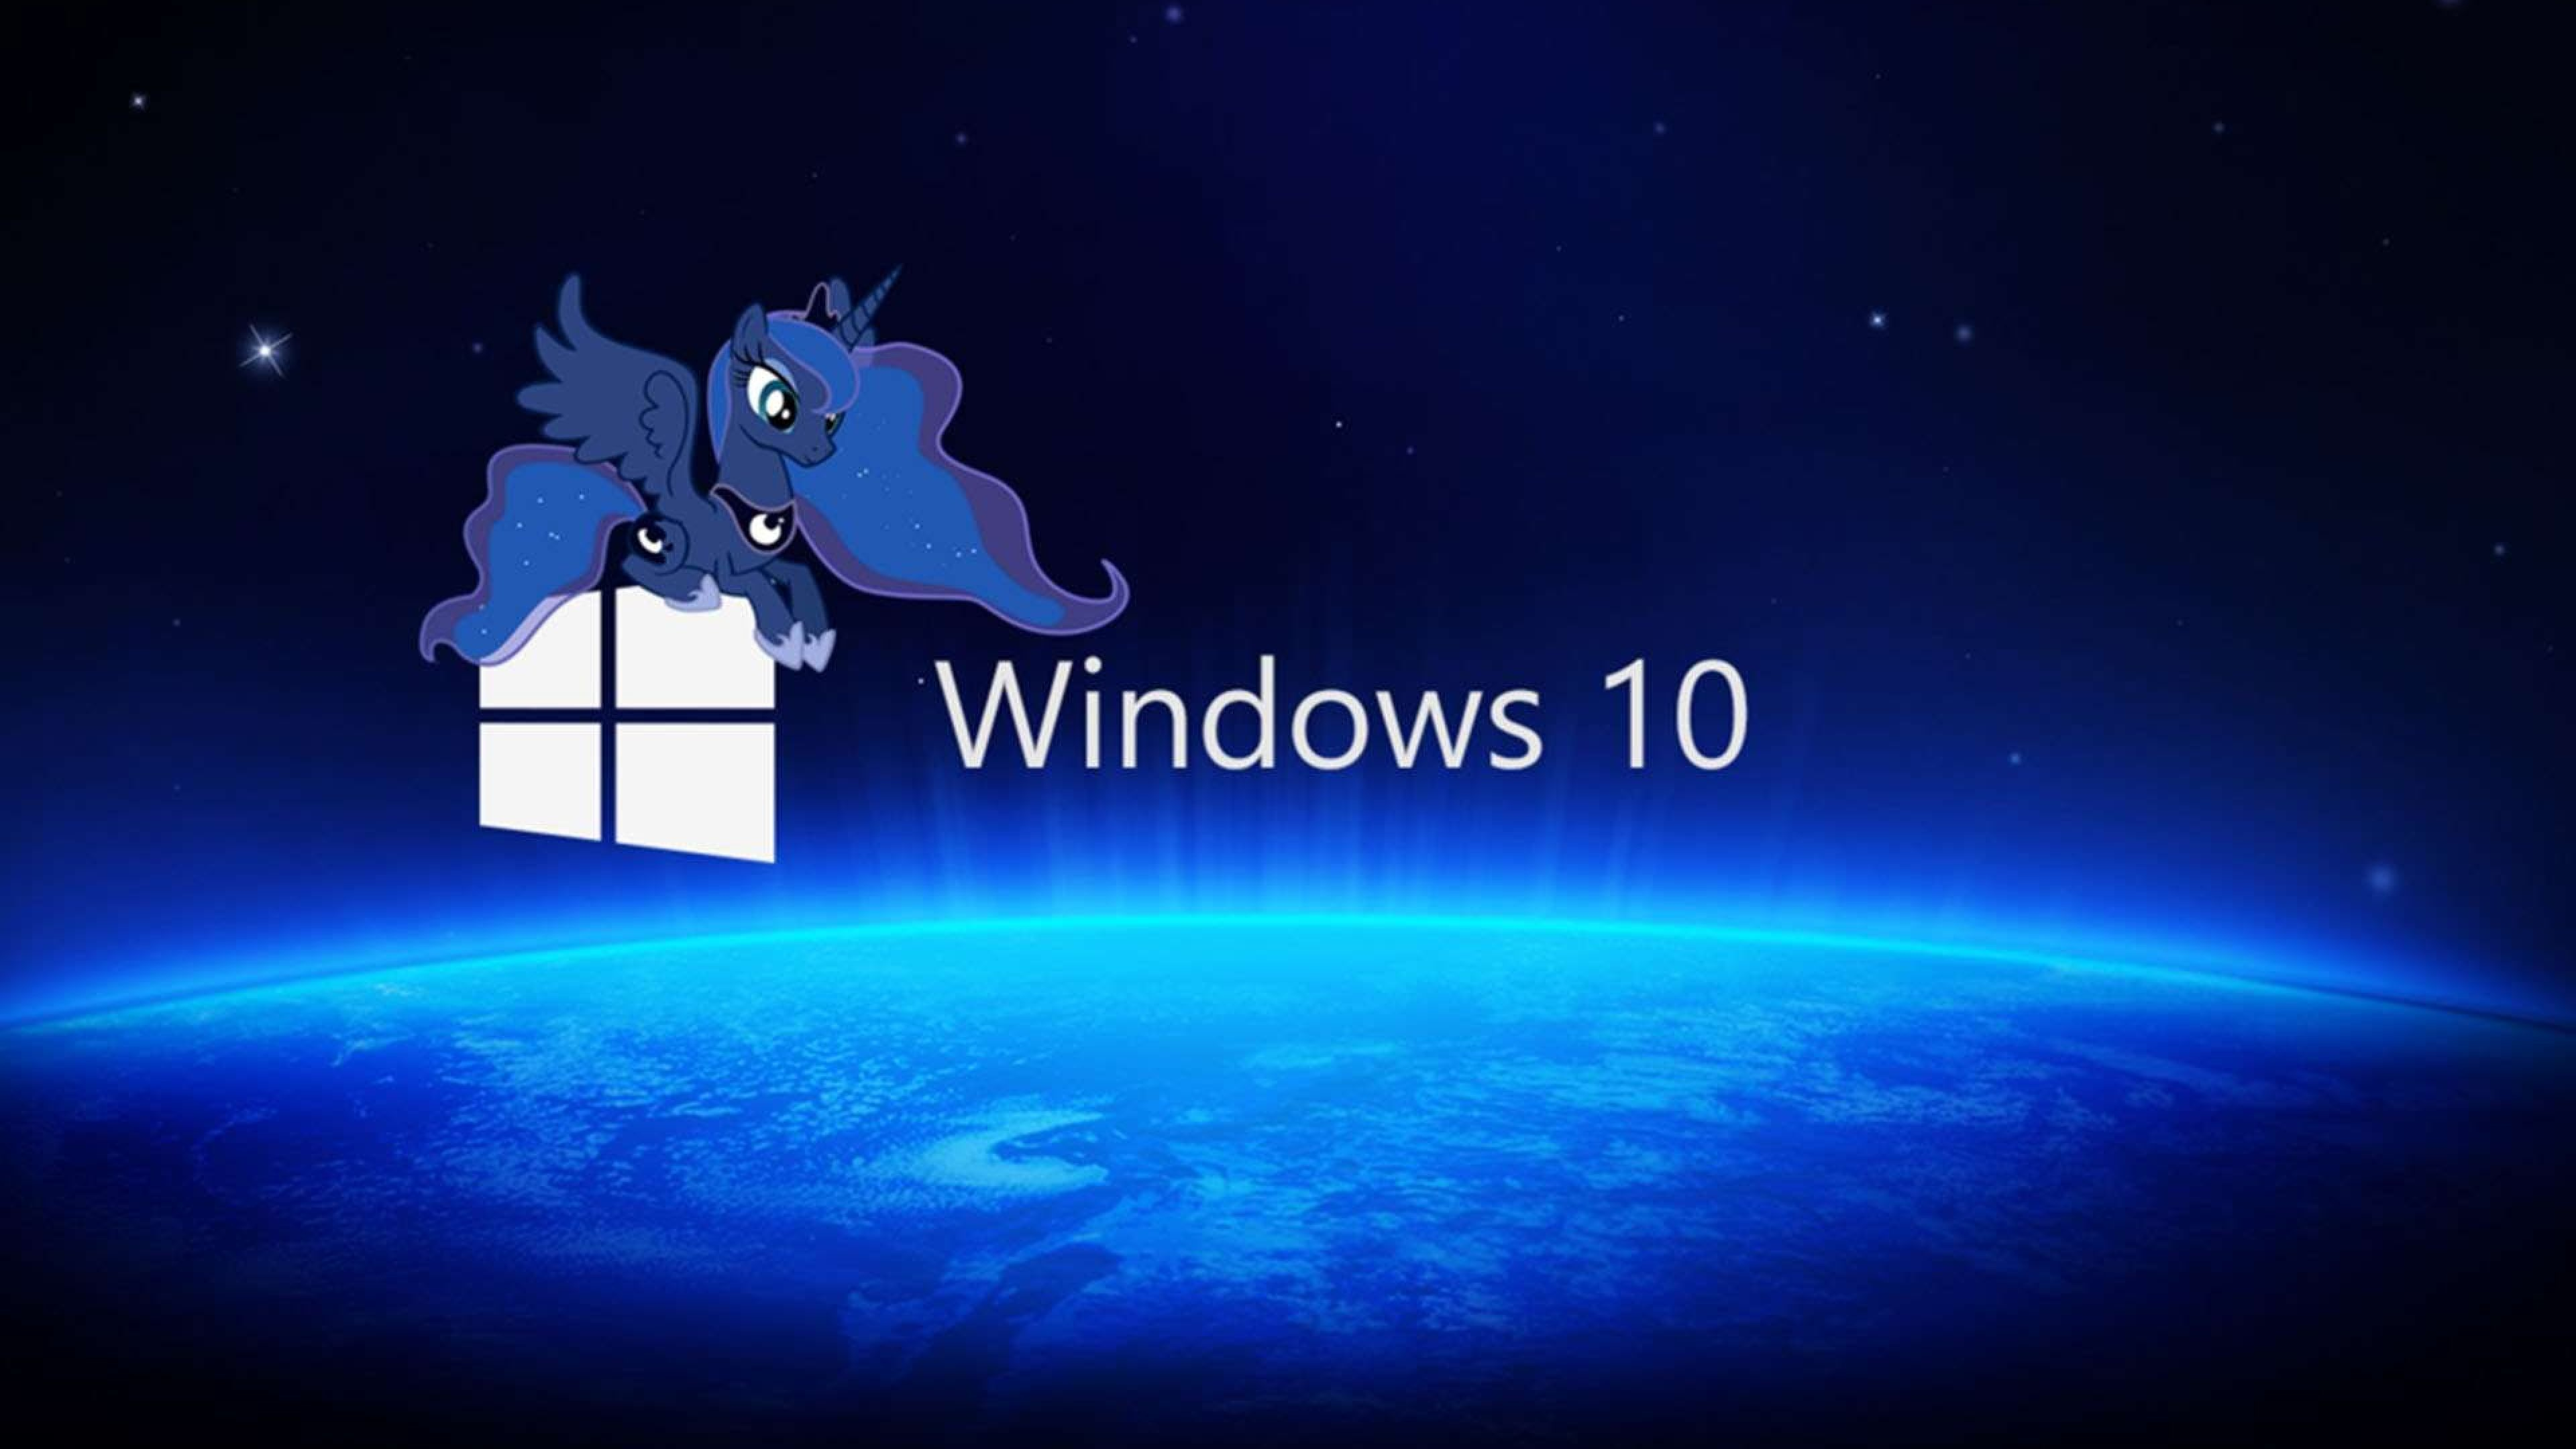 for windows 10 - photo #45